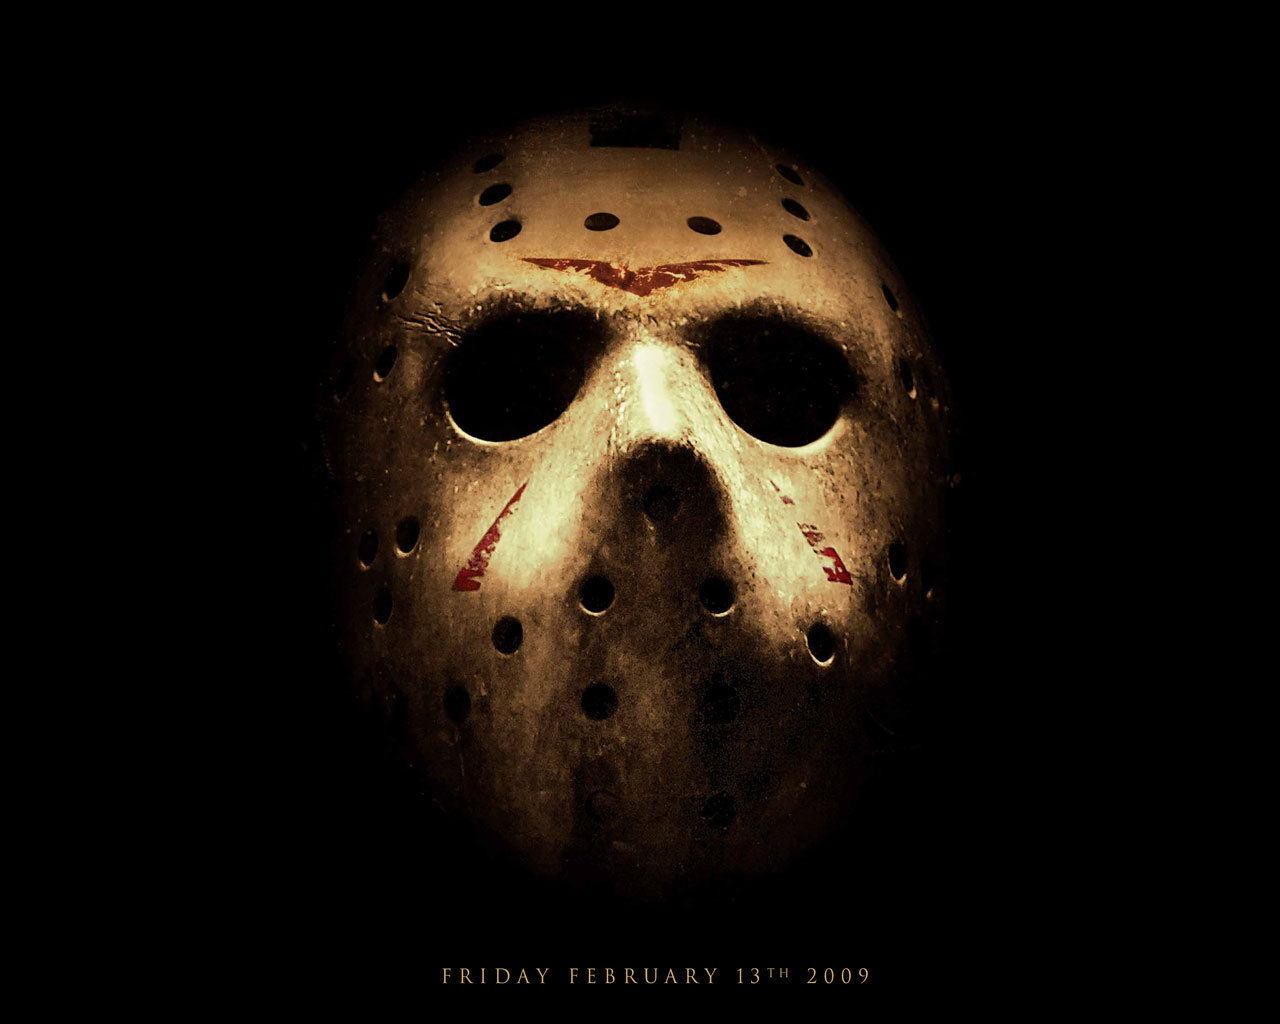 New Friday the 13th kertas dinding